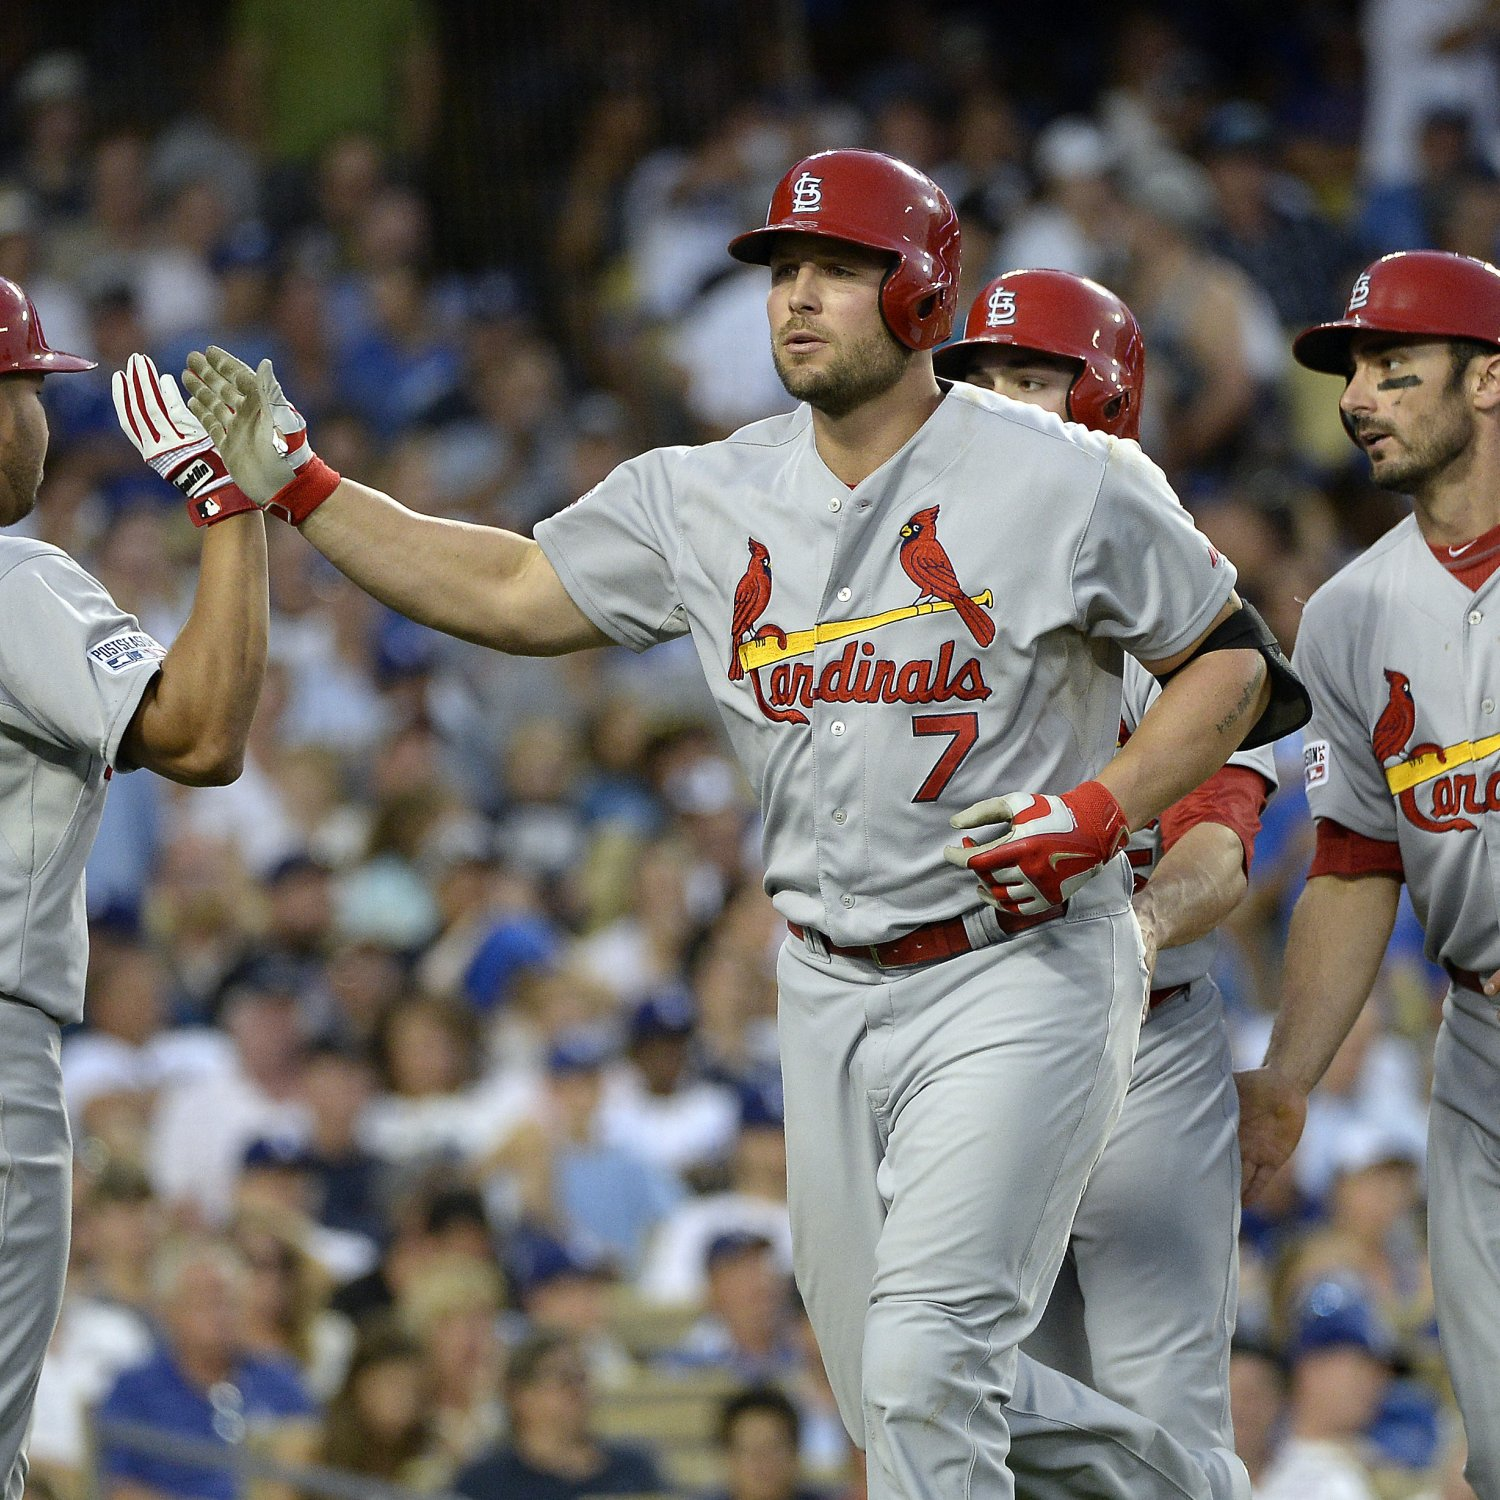 Cardinals Vs. Dodgers: Game 1 Score And Twitter Reaction